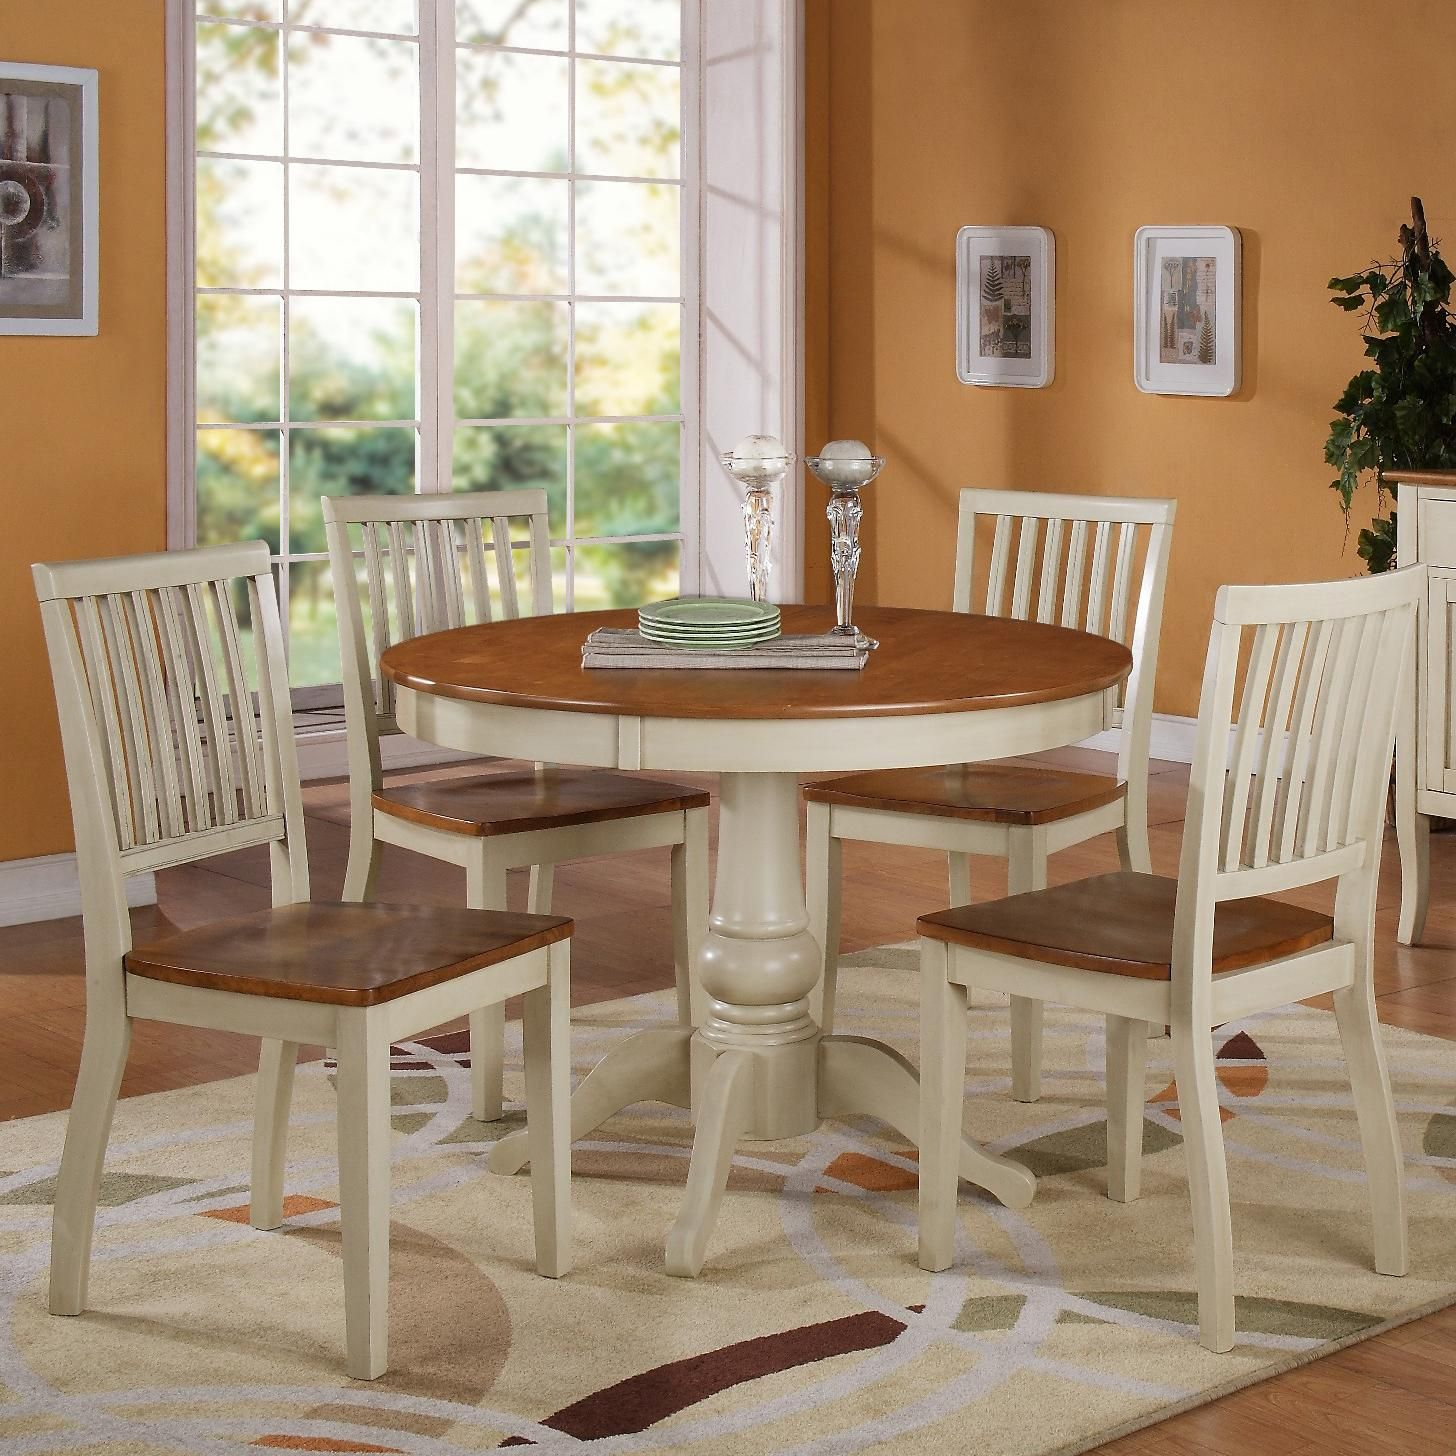 Candice 5 Pc. Pedestal Table With Chair Dining Set By Steve Silver   Hudsonu0027s Furniture